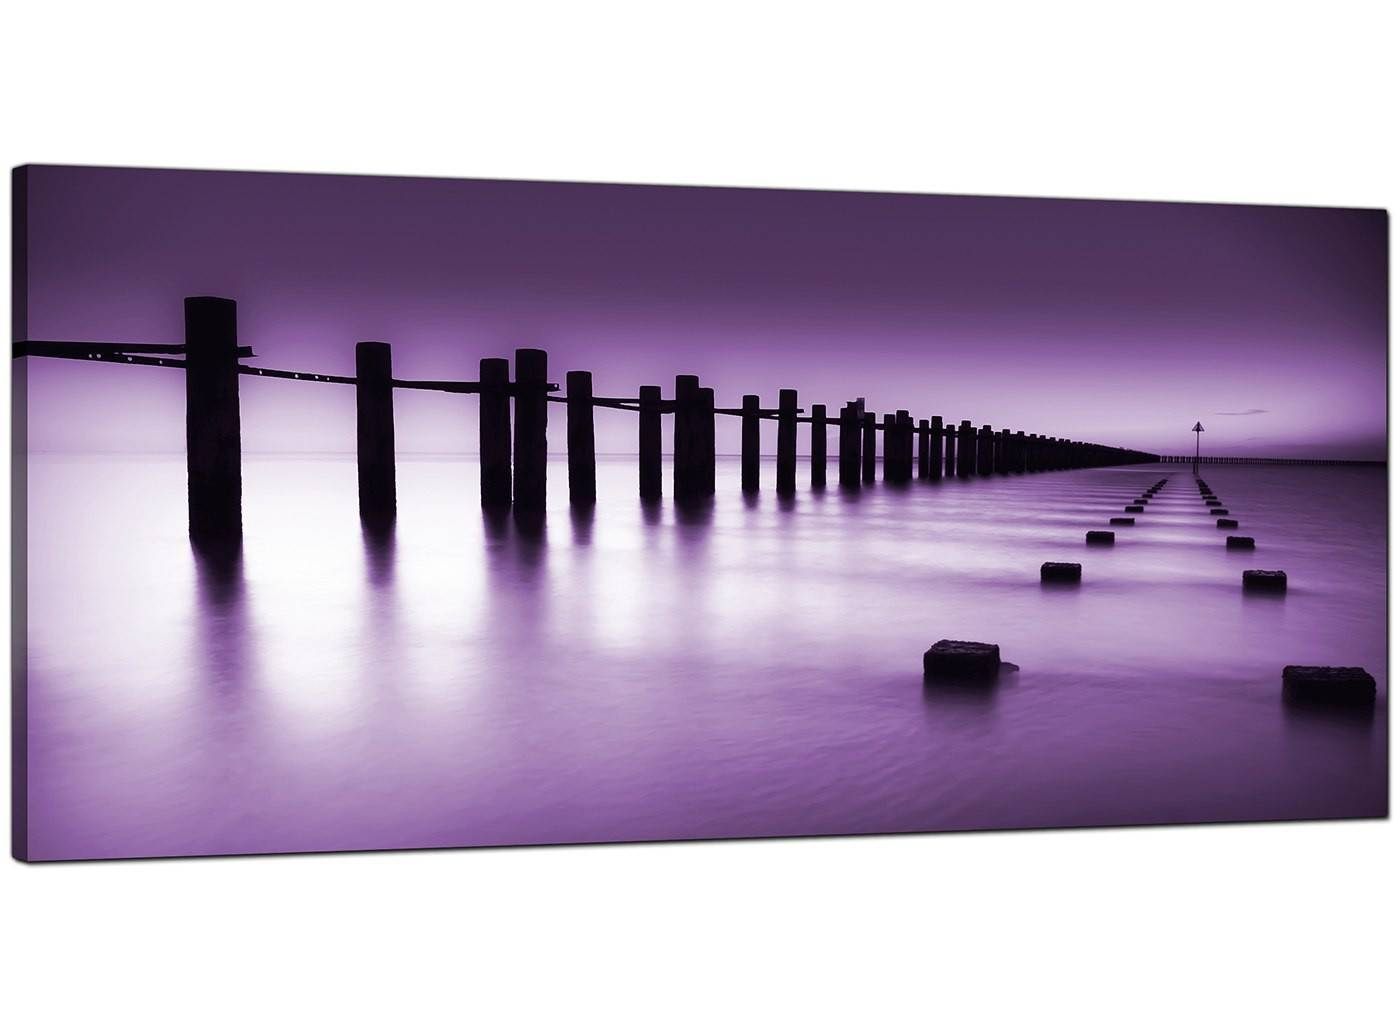 Cheap Purple Canvas Prints Of The Seaside Within Most Current Purple Canvas Wall Art (View 3 of 20)